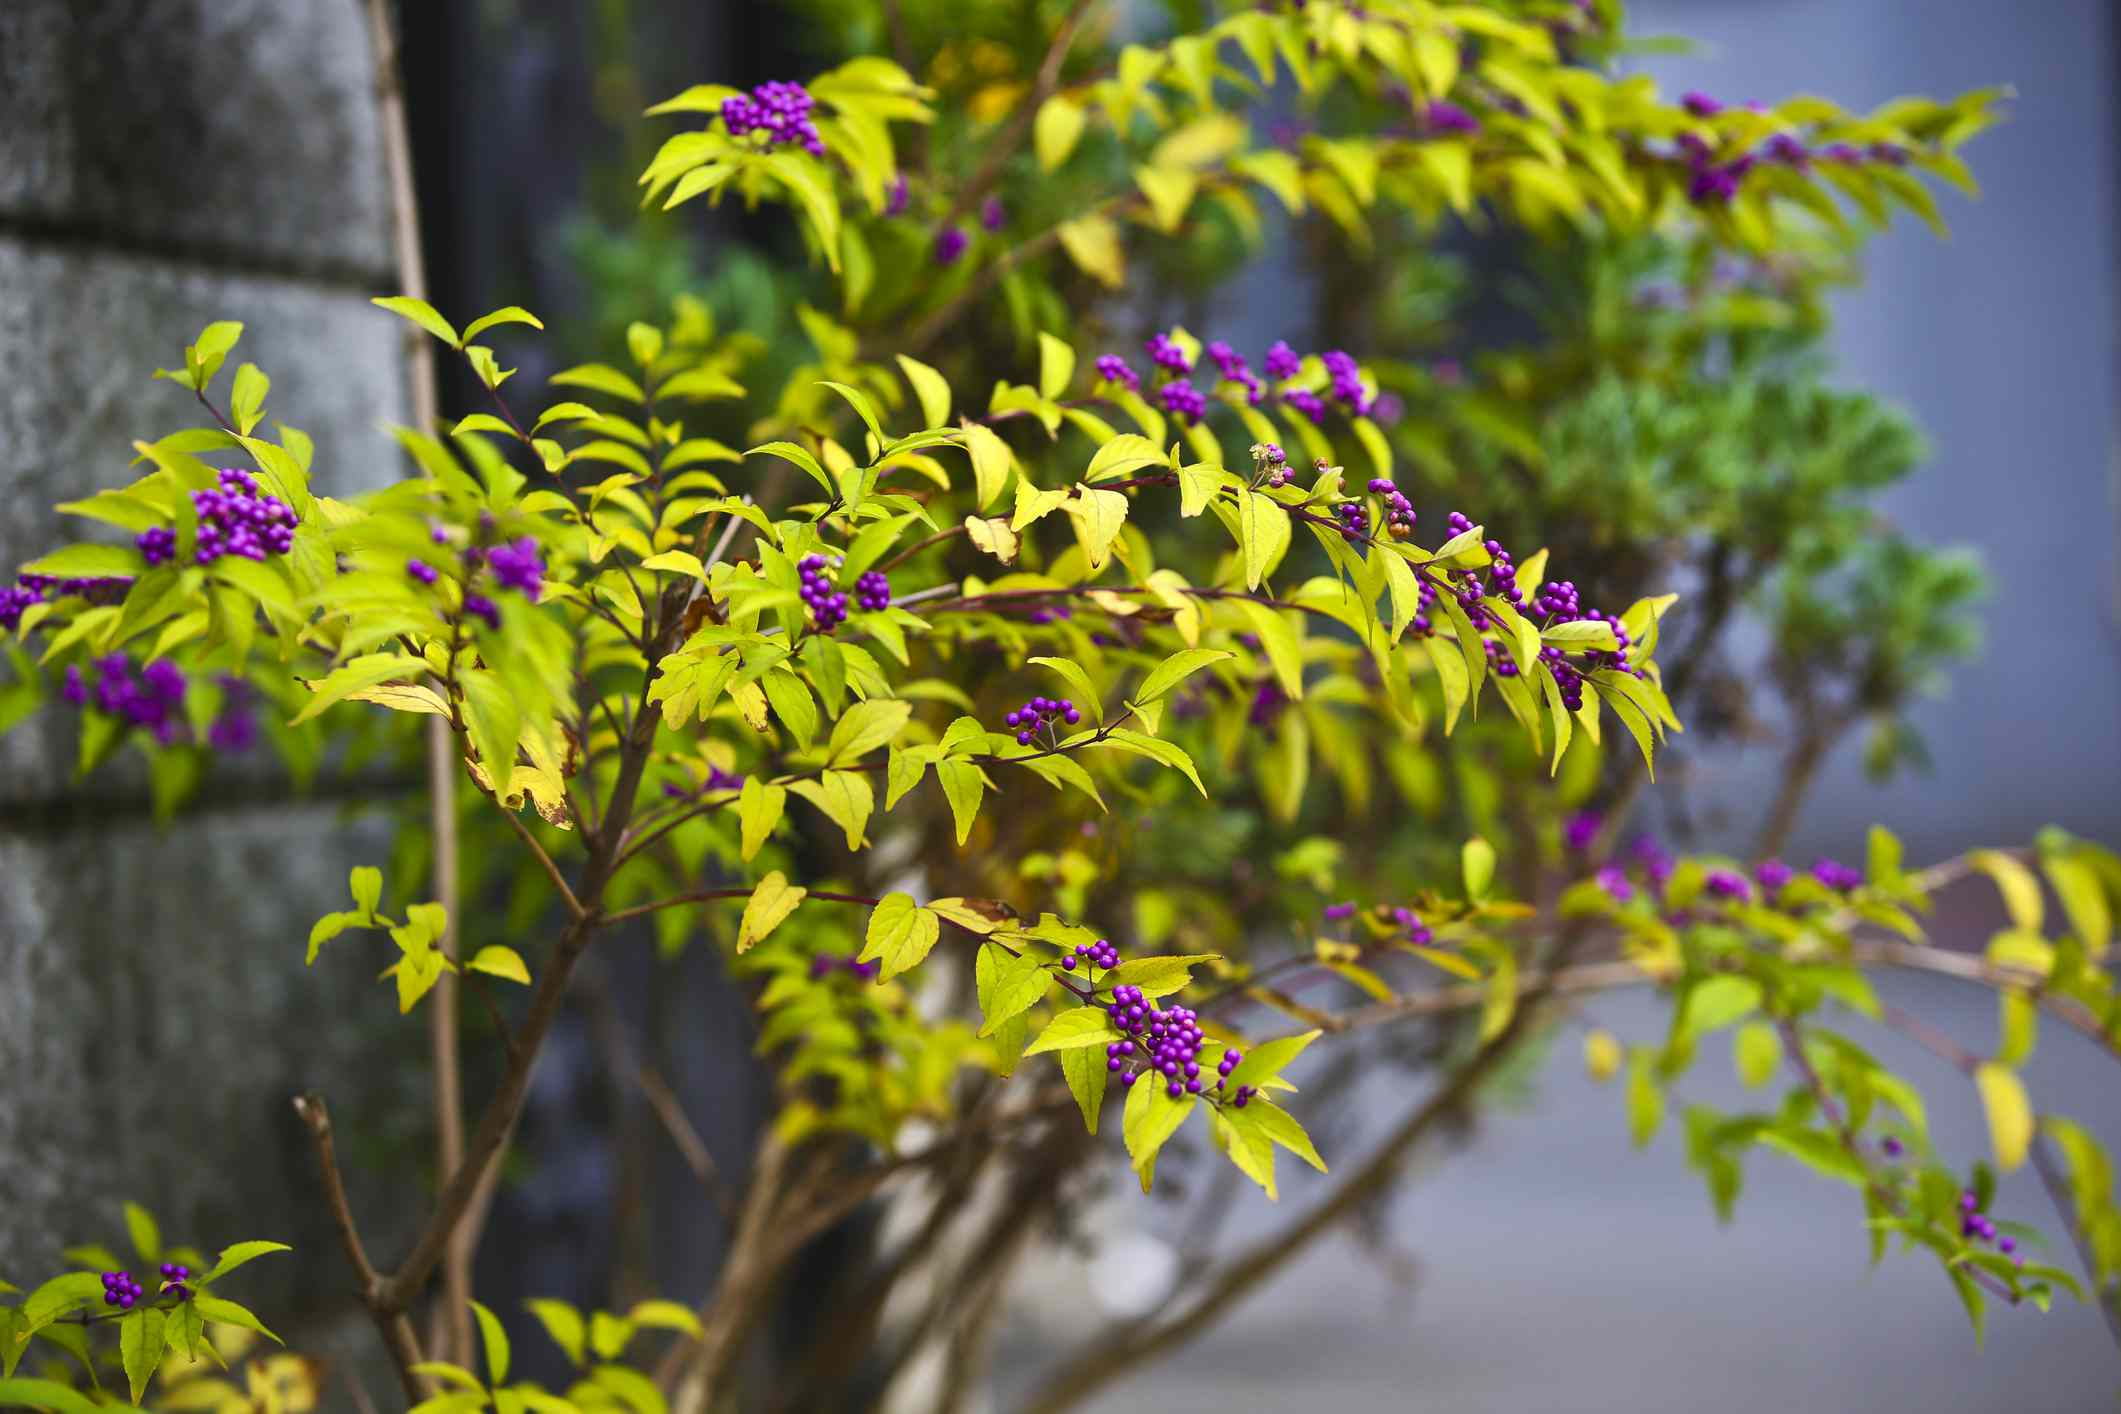 beautyberry shrub by a wall